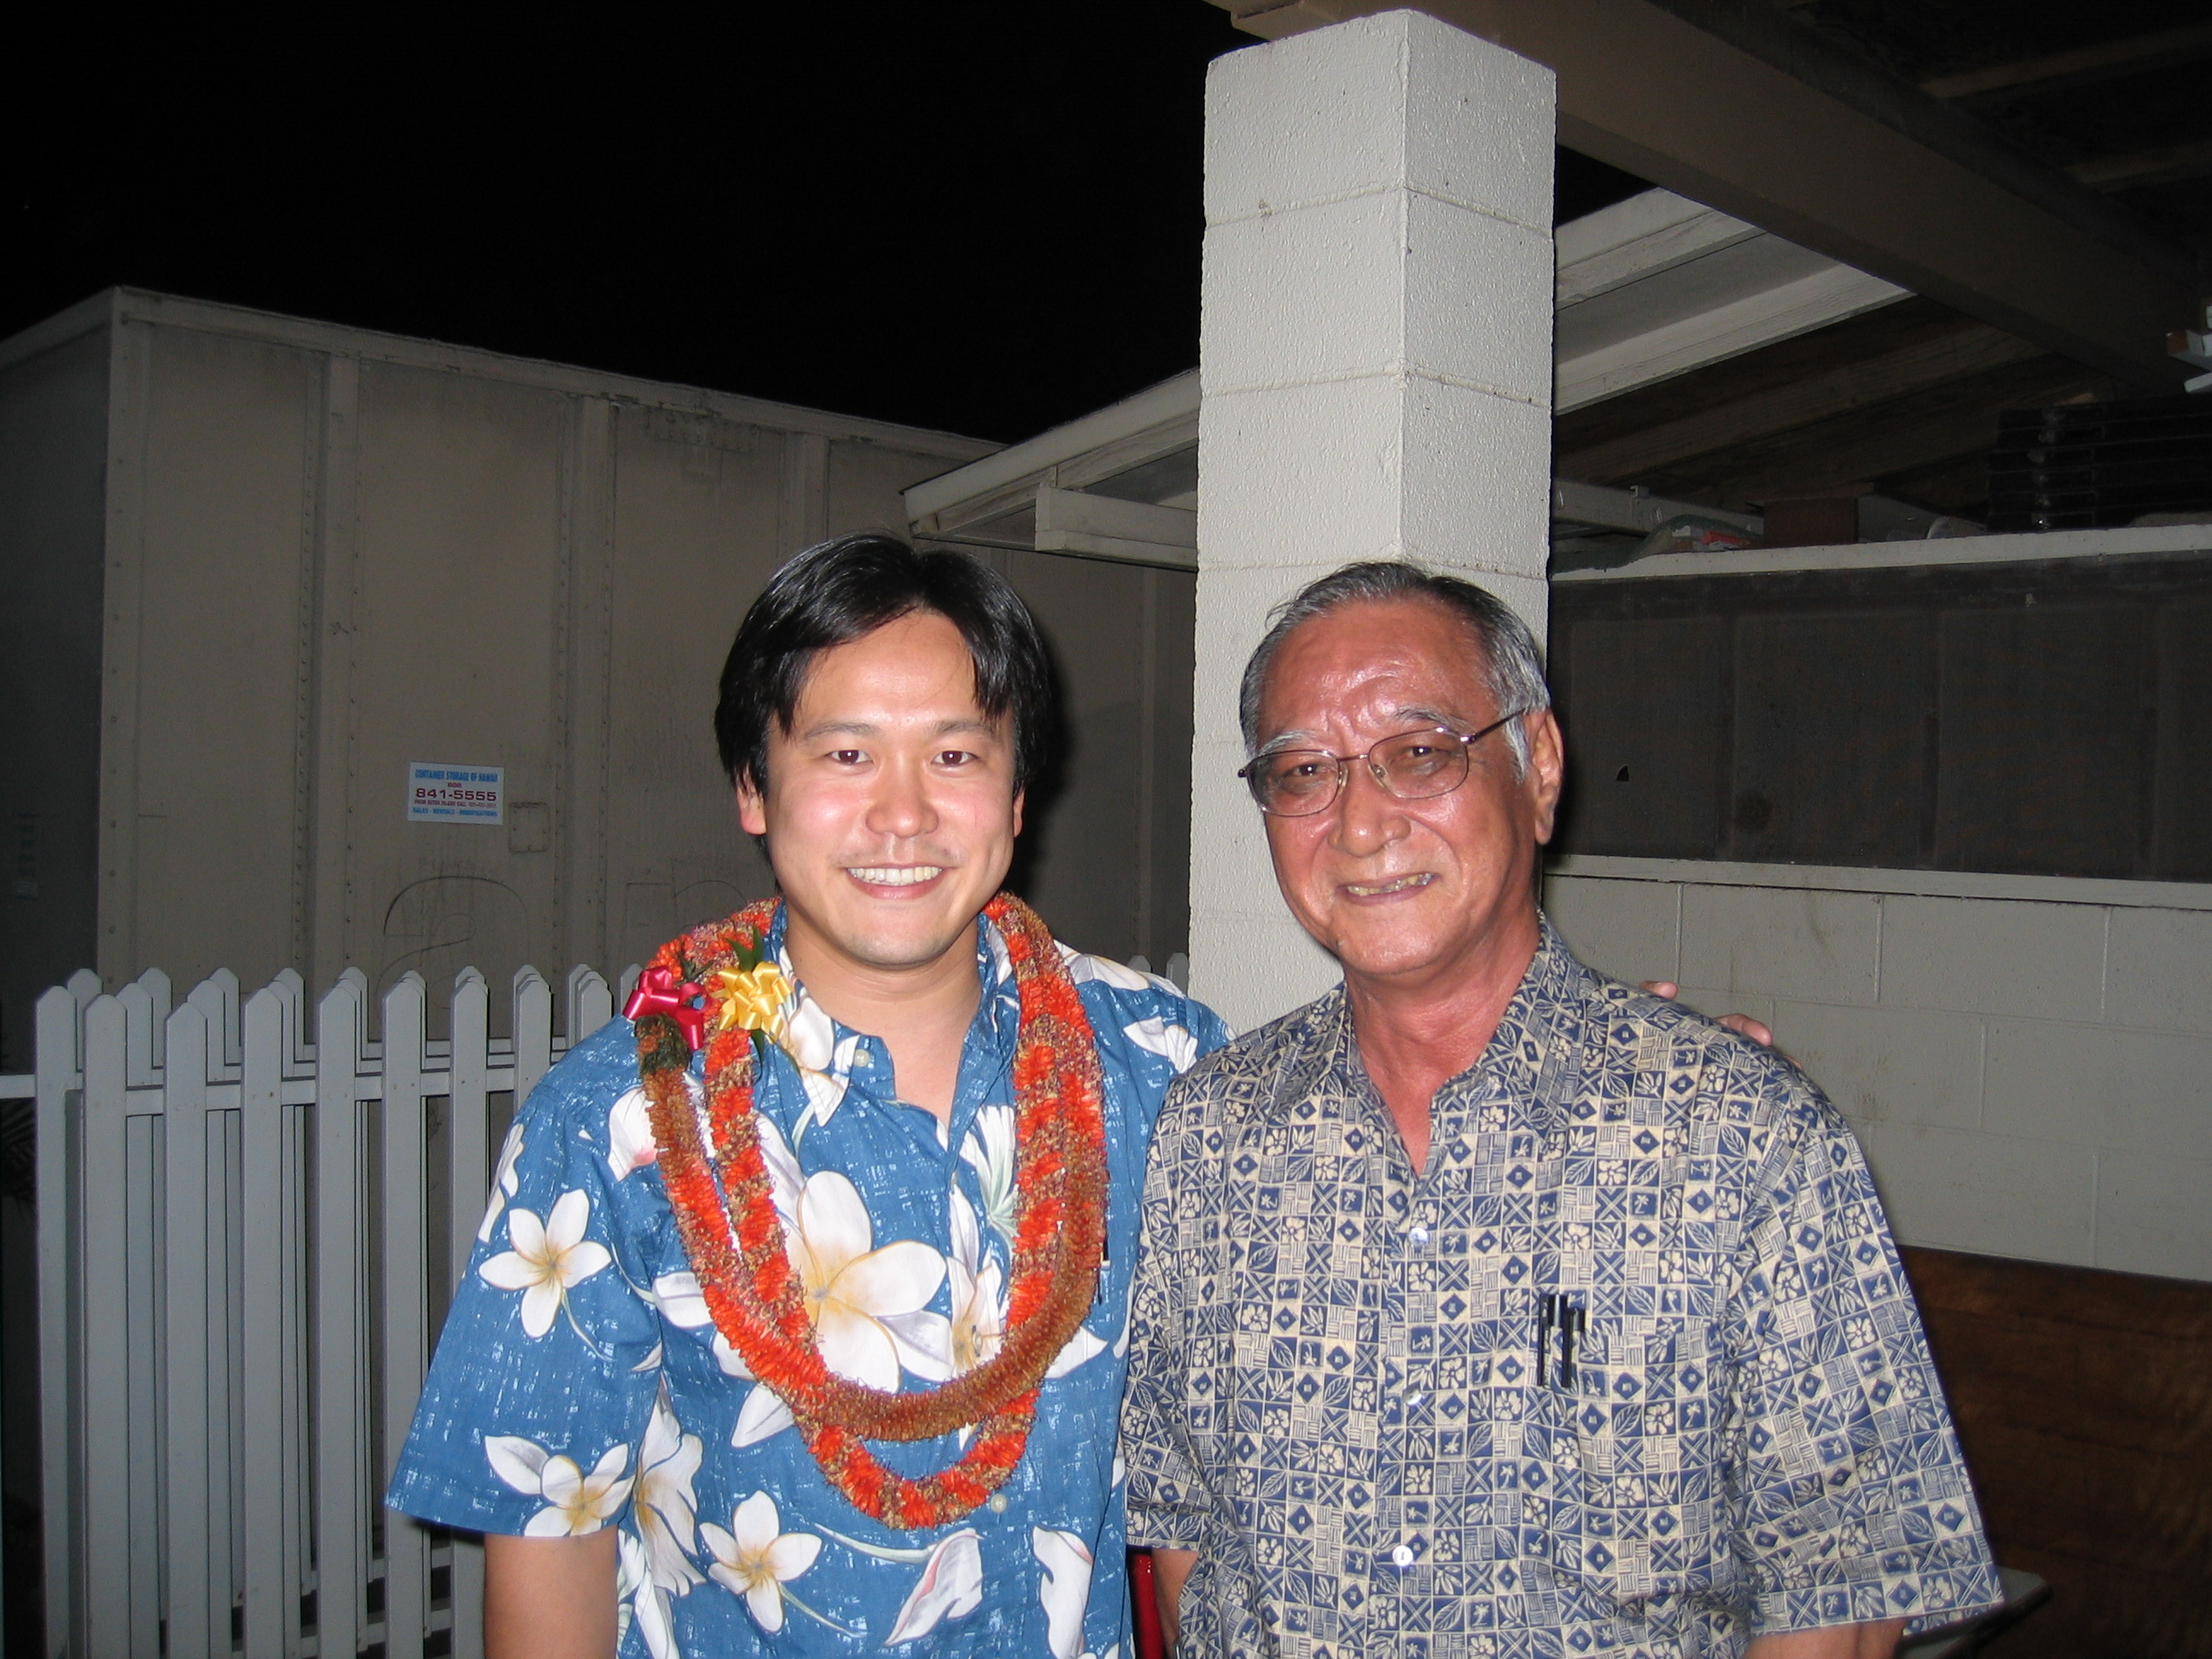 Rep. Jon Riki Karamatsu and Rep. Bob Nakasone at Karamatsu's 2006 fundraiser at St. Andrew's Priory School.